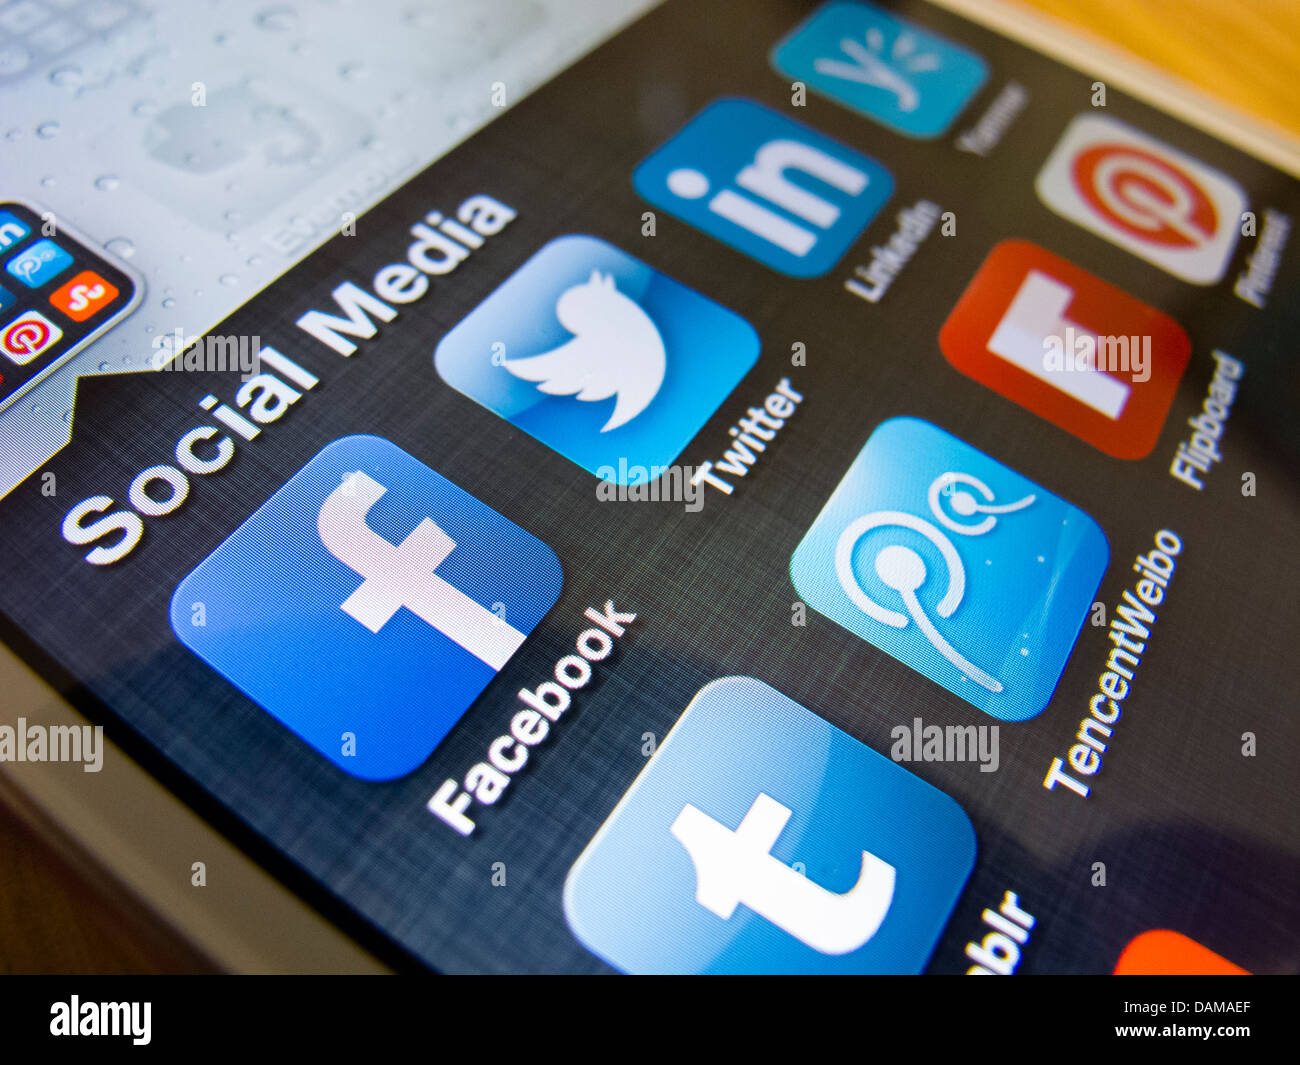 detail of iPhone 5 screen with many social media app icons - Stock Image